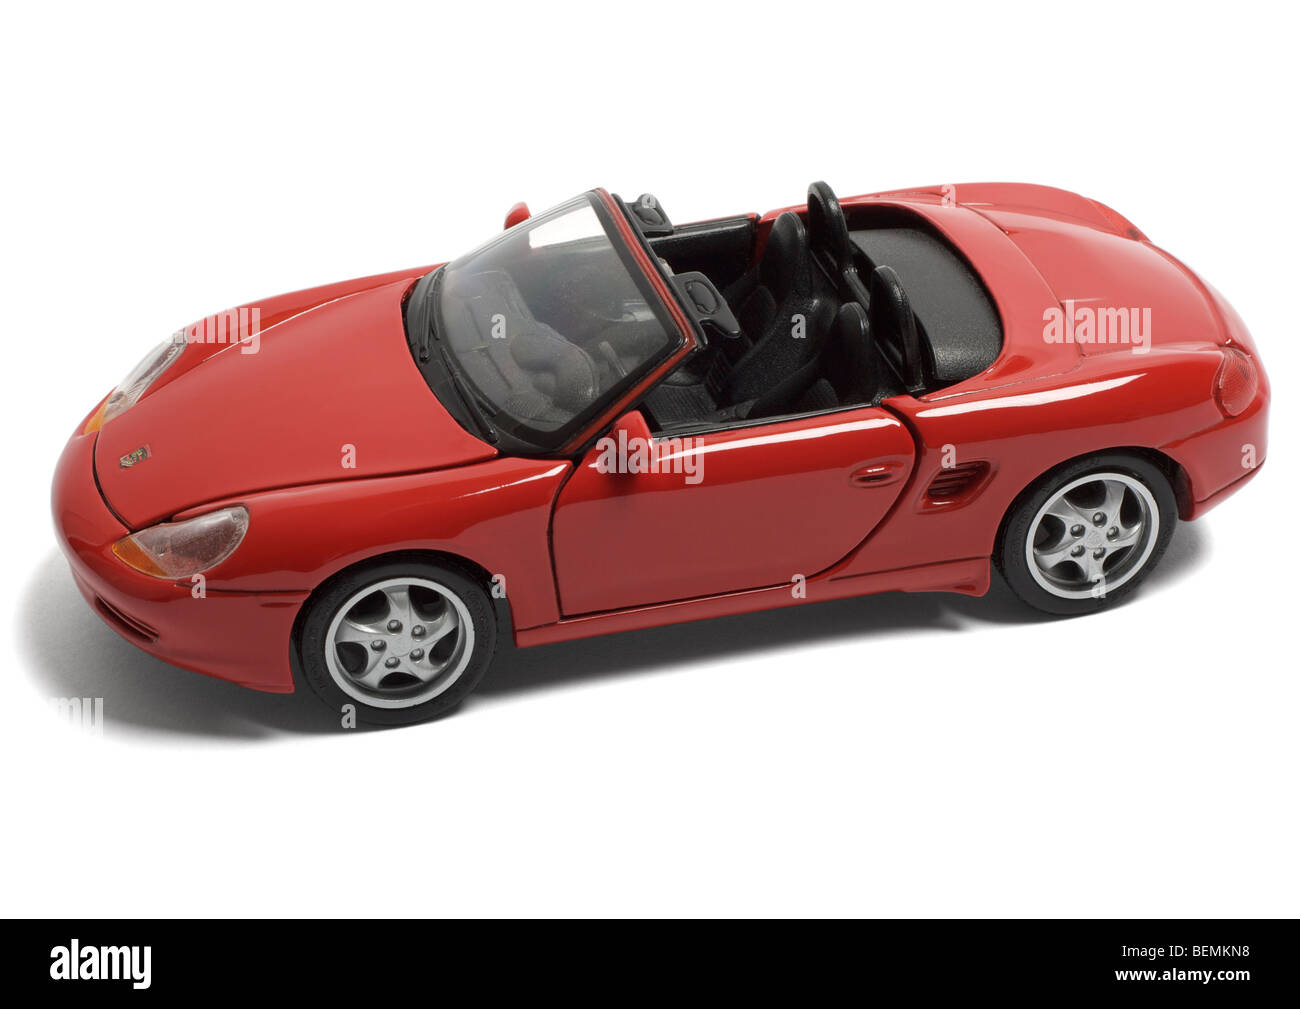 red toy convertible photos red toy convertible images alamy. Black Bedroom Furniture Sets. Home Design Ideas